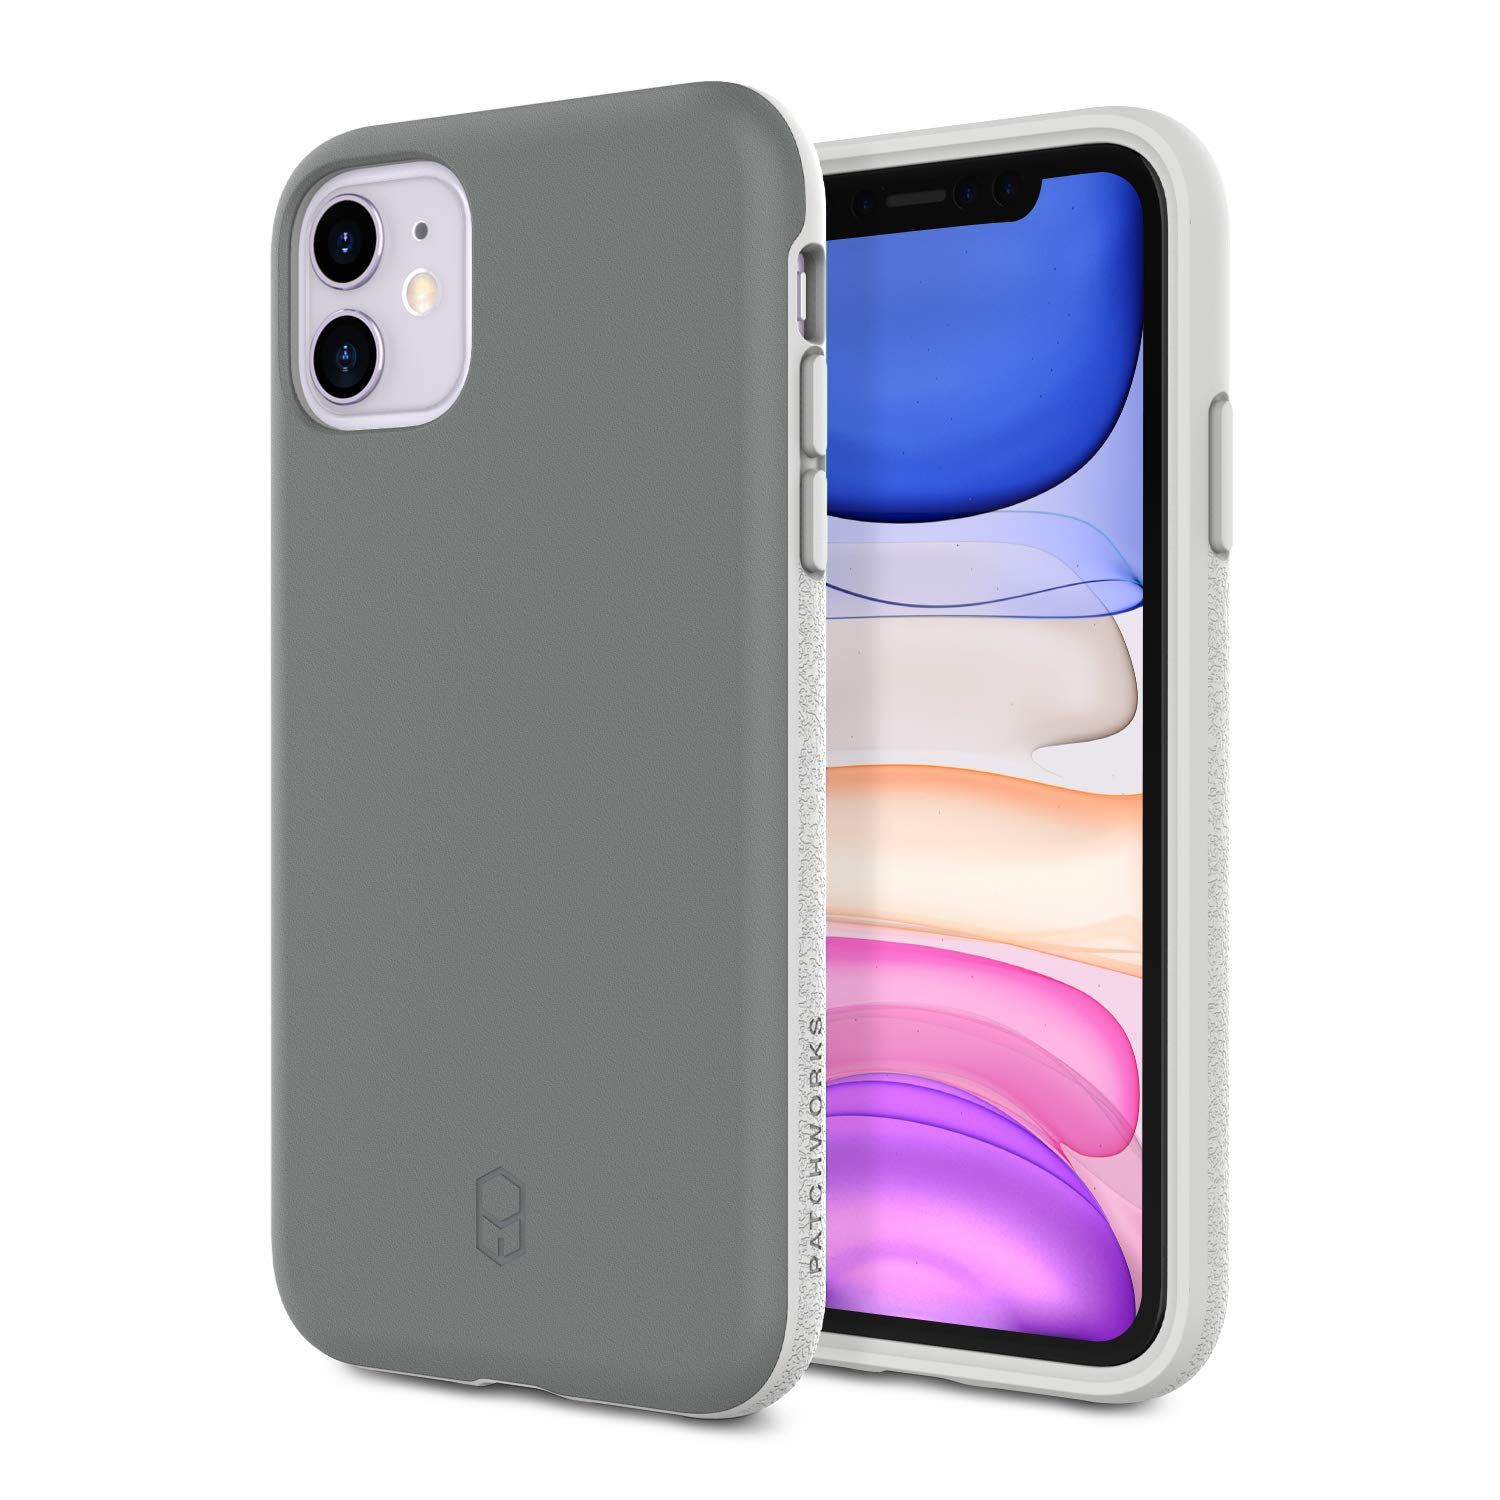 PATCHWORKS iPhone 11 Case [Level ITG Series] Thin Hybrid Shockproof Dual Layer TPU + PC Case [Military Grade Drop Test Certified] [Wireless Charging Compatible], Gray